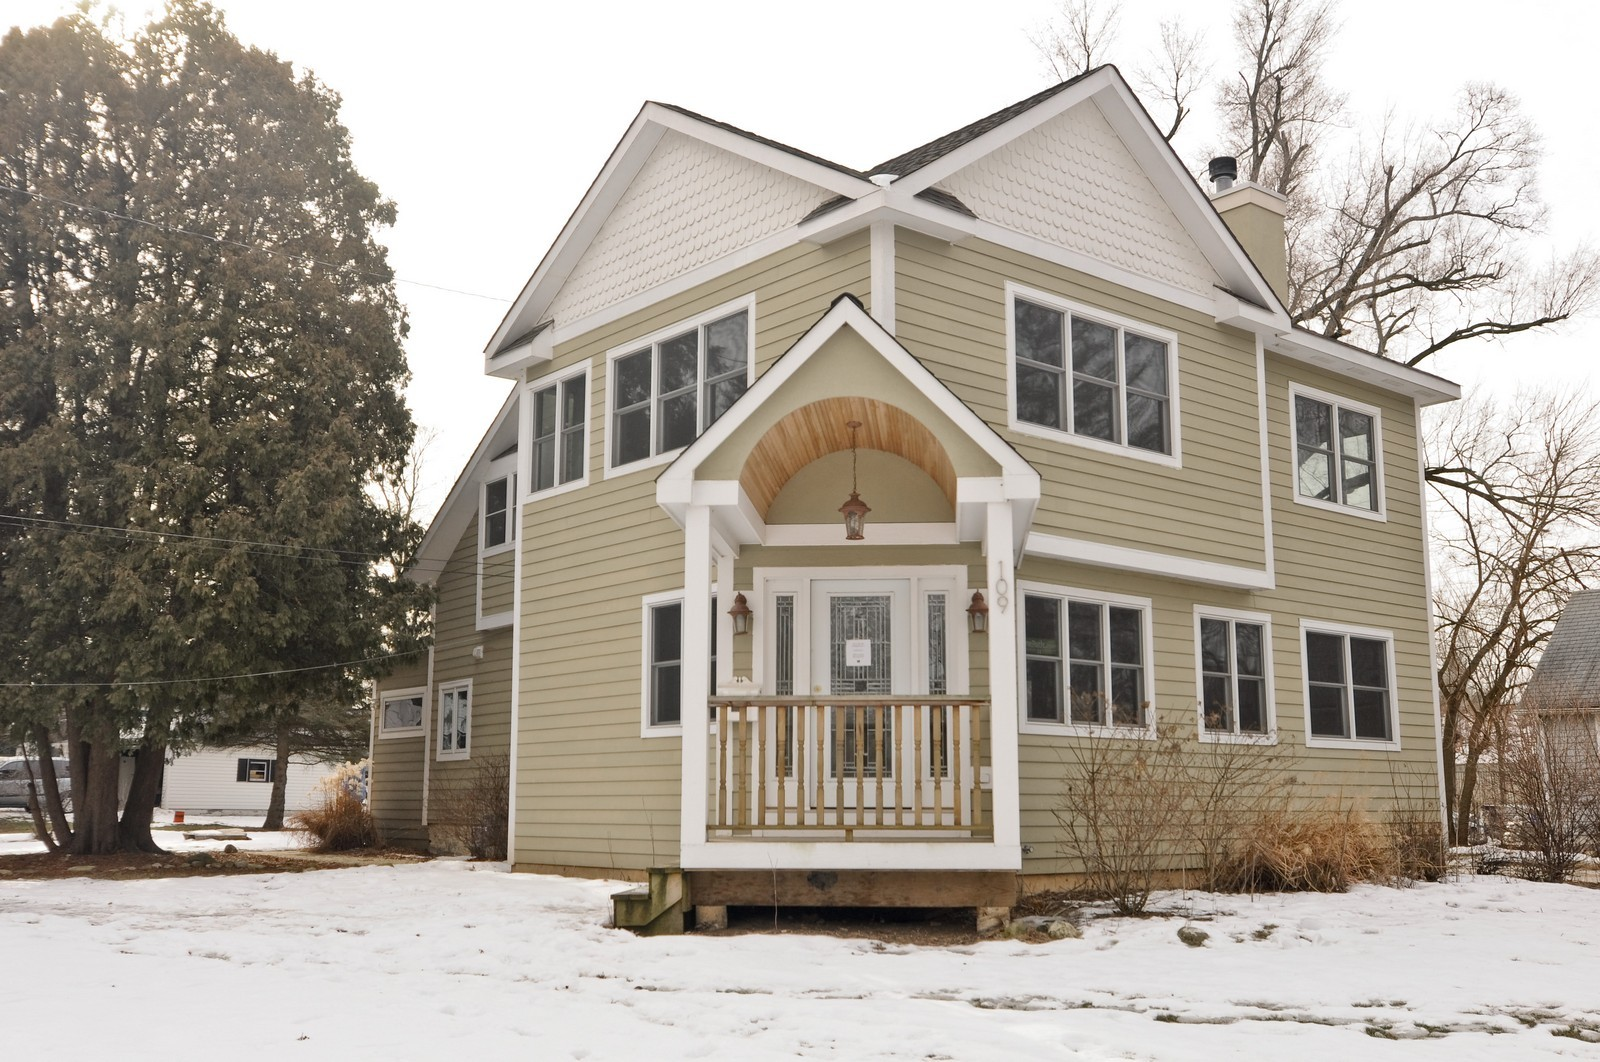 Real Estate Photography - 109 N River Rd, Fox River Grove, IL, 60021 - Front View